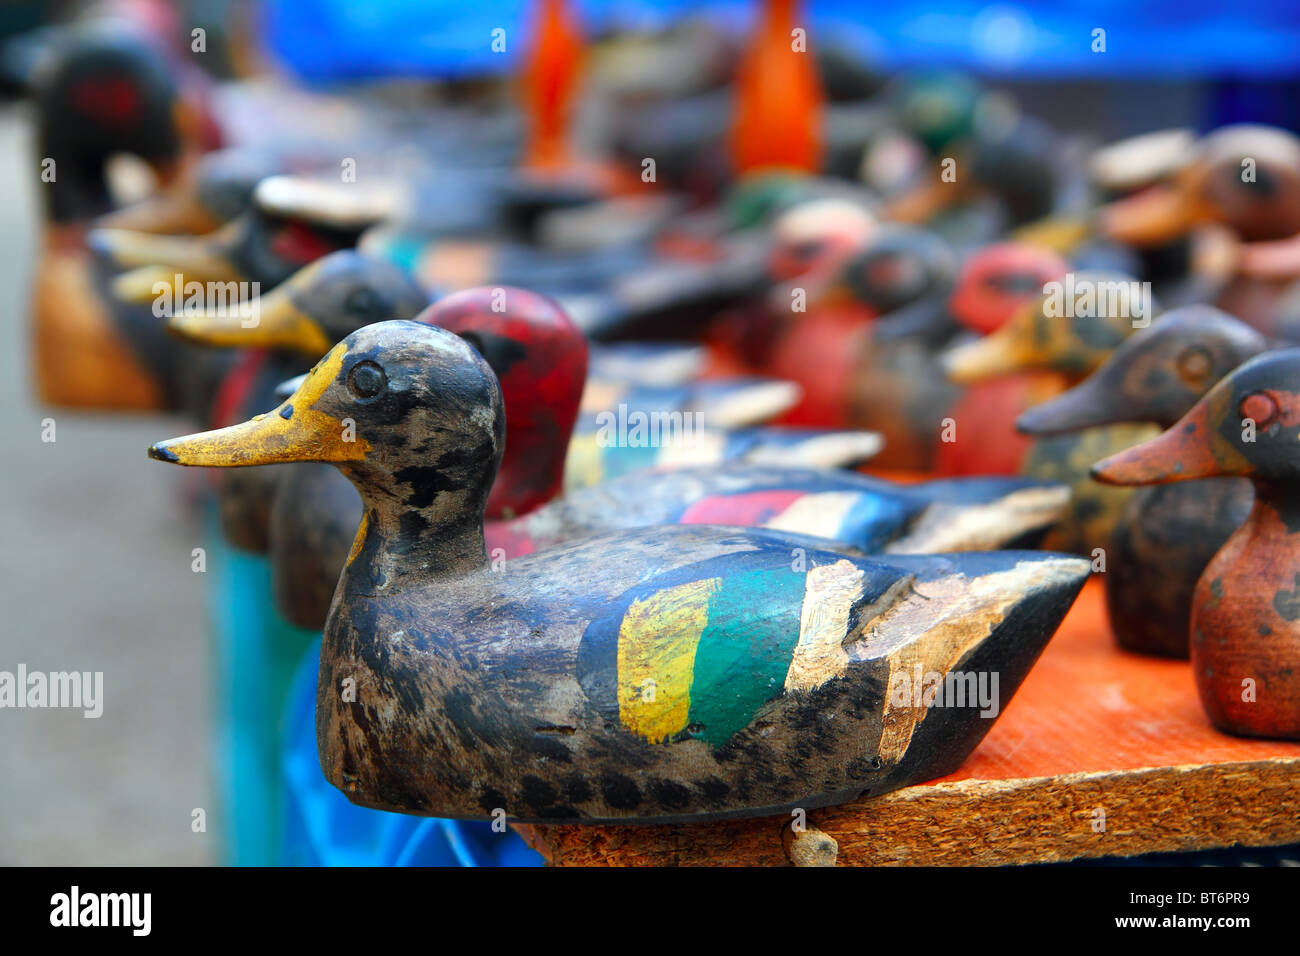 Duck decoy arrangement row colorful hand painted for hunters - Stock Image